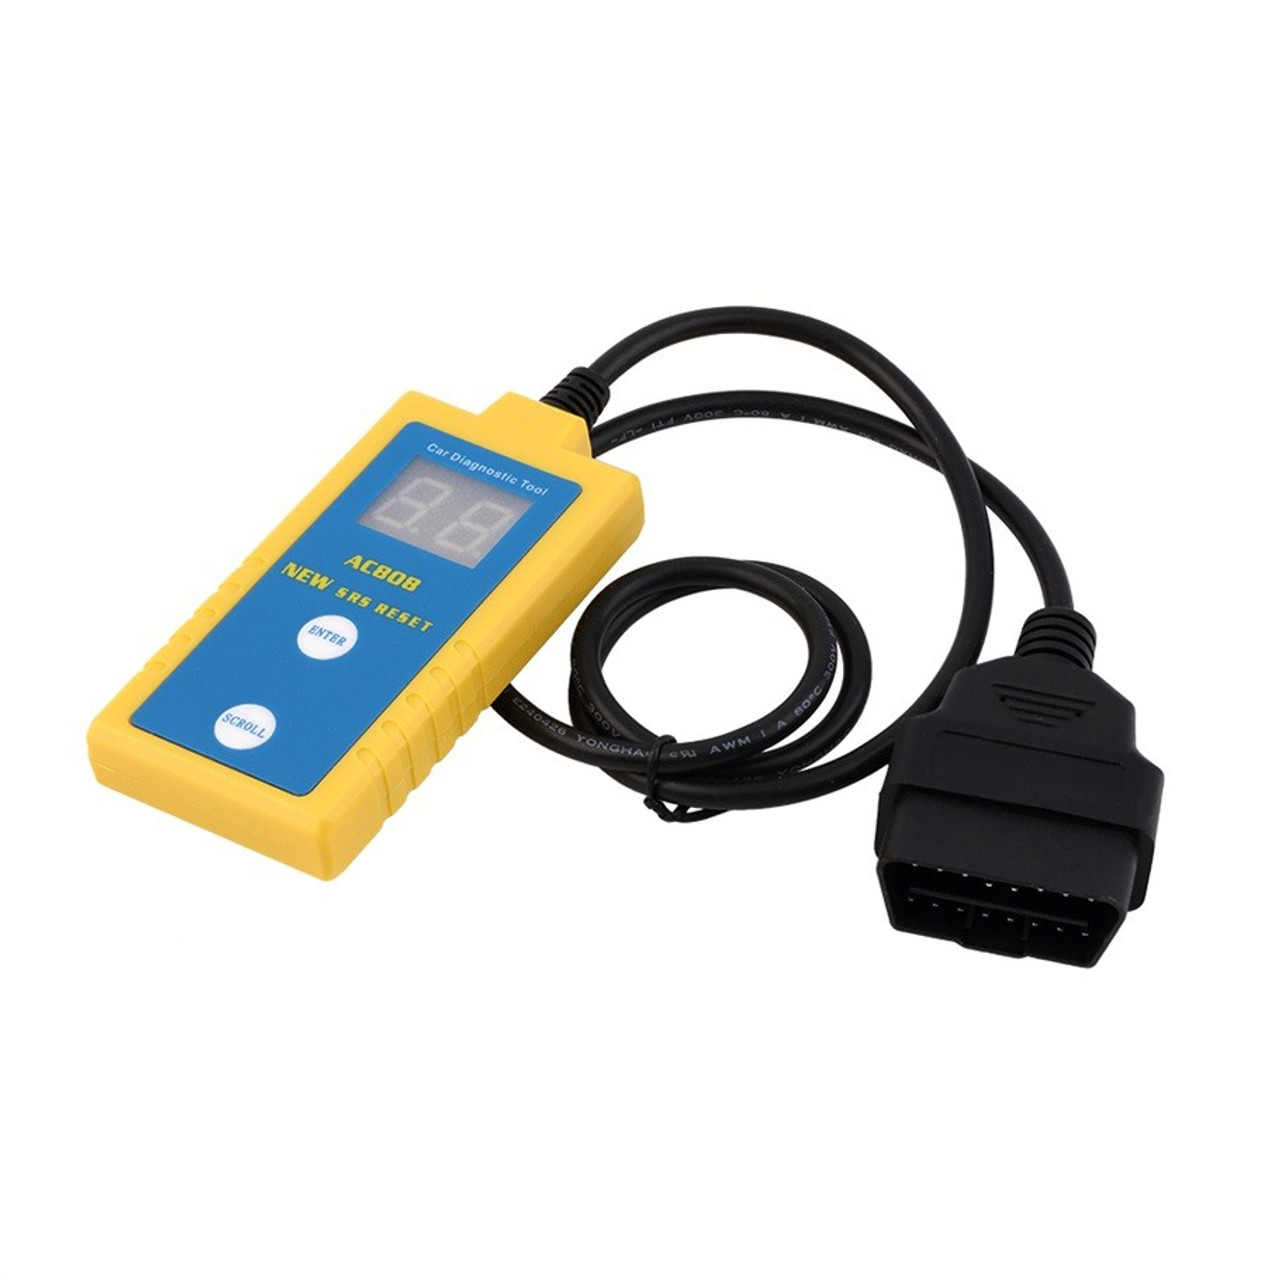 AC808 Airbag SRS Reset Tool Diagnostic Scanner for 94-03 BMW + 20 Pin Cable